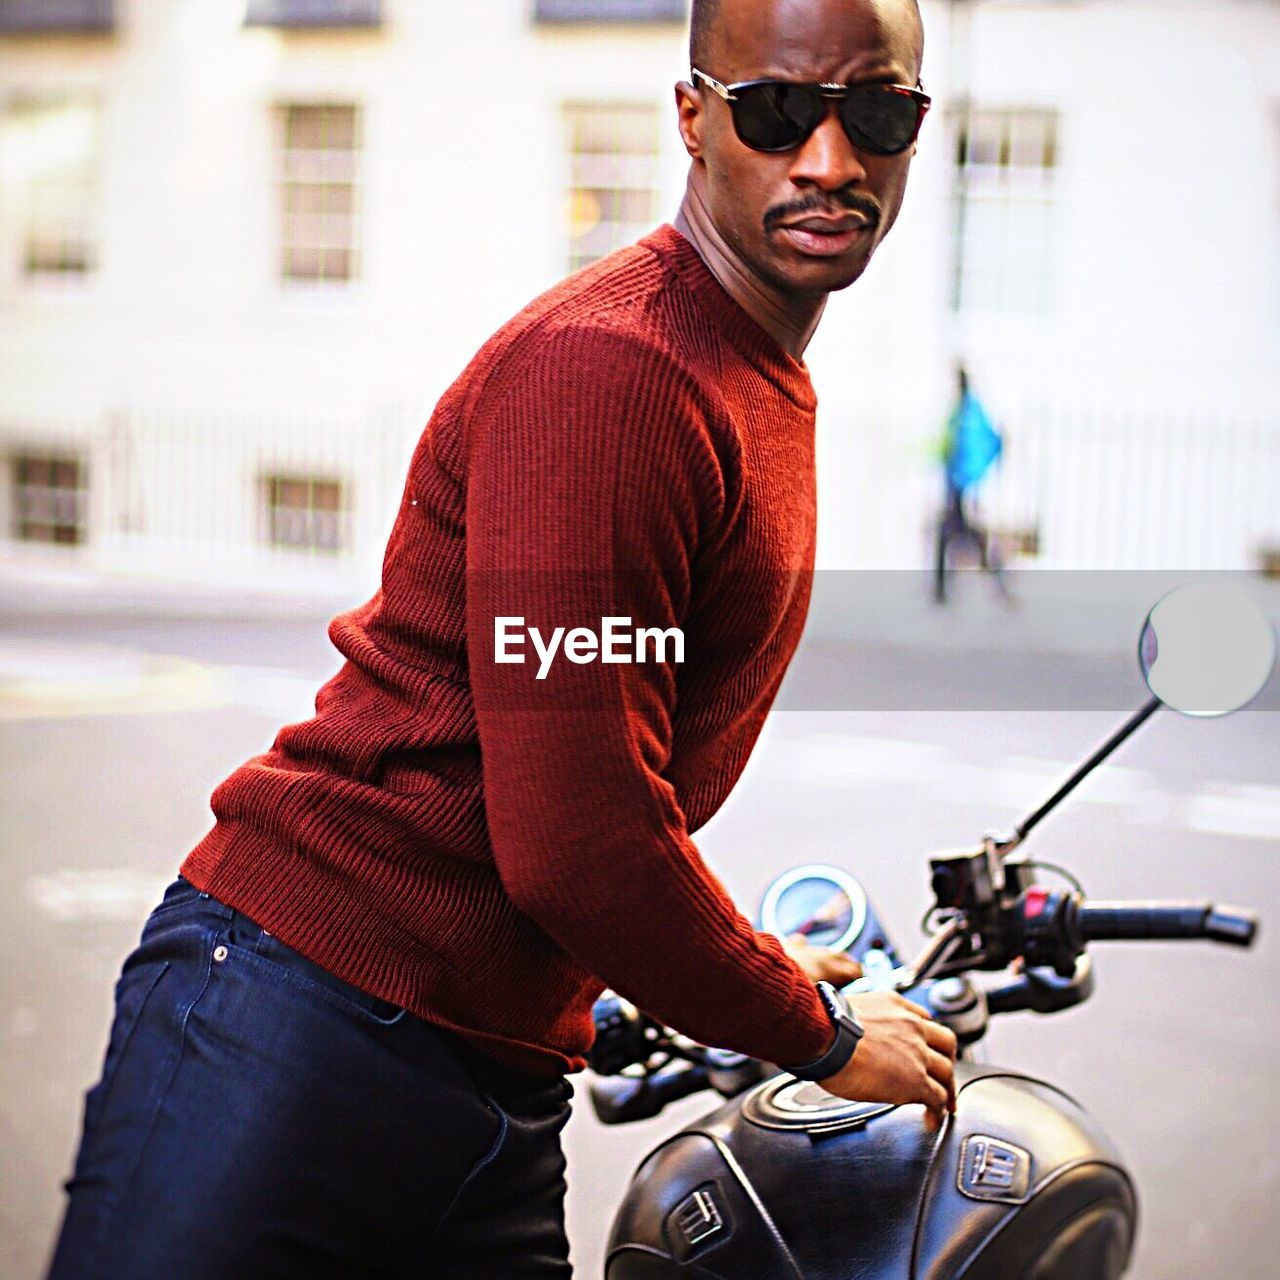 sunglasses, one person, mode of transport, bicycle, transportation, cycling, motorcycle, lifestyles, riding, outdoors, land vehicle, men, standing, one man only, real people, young adult, leisure activity, day, adult, adults only, only men, people, biker, city, building exterior